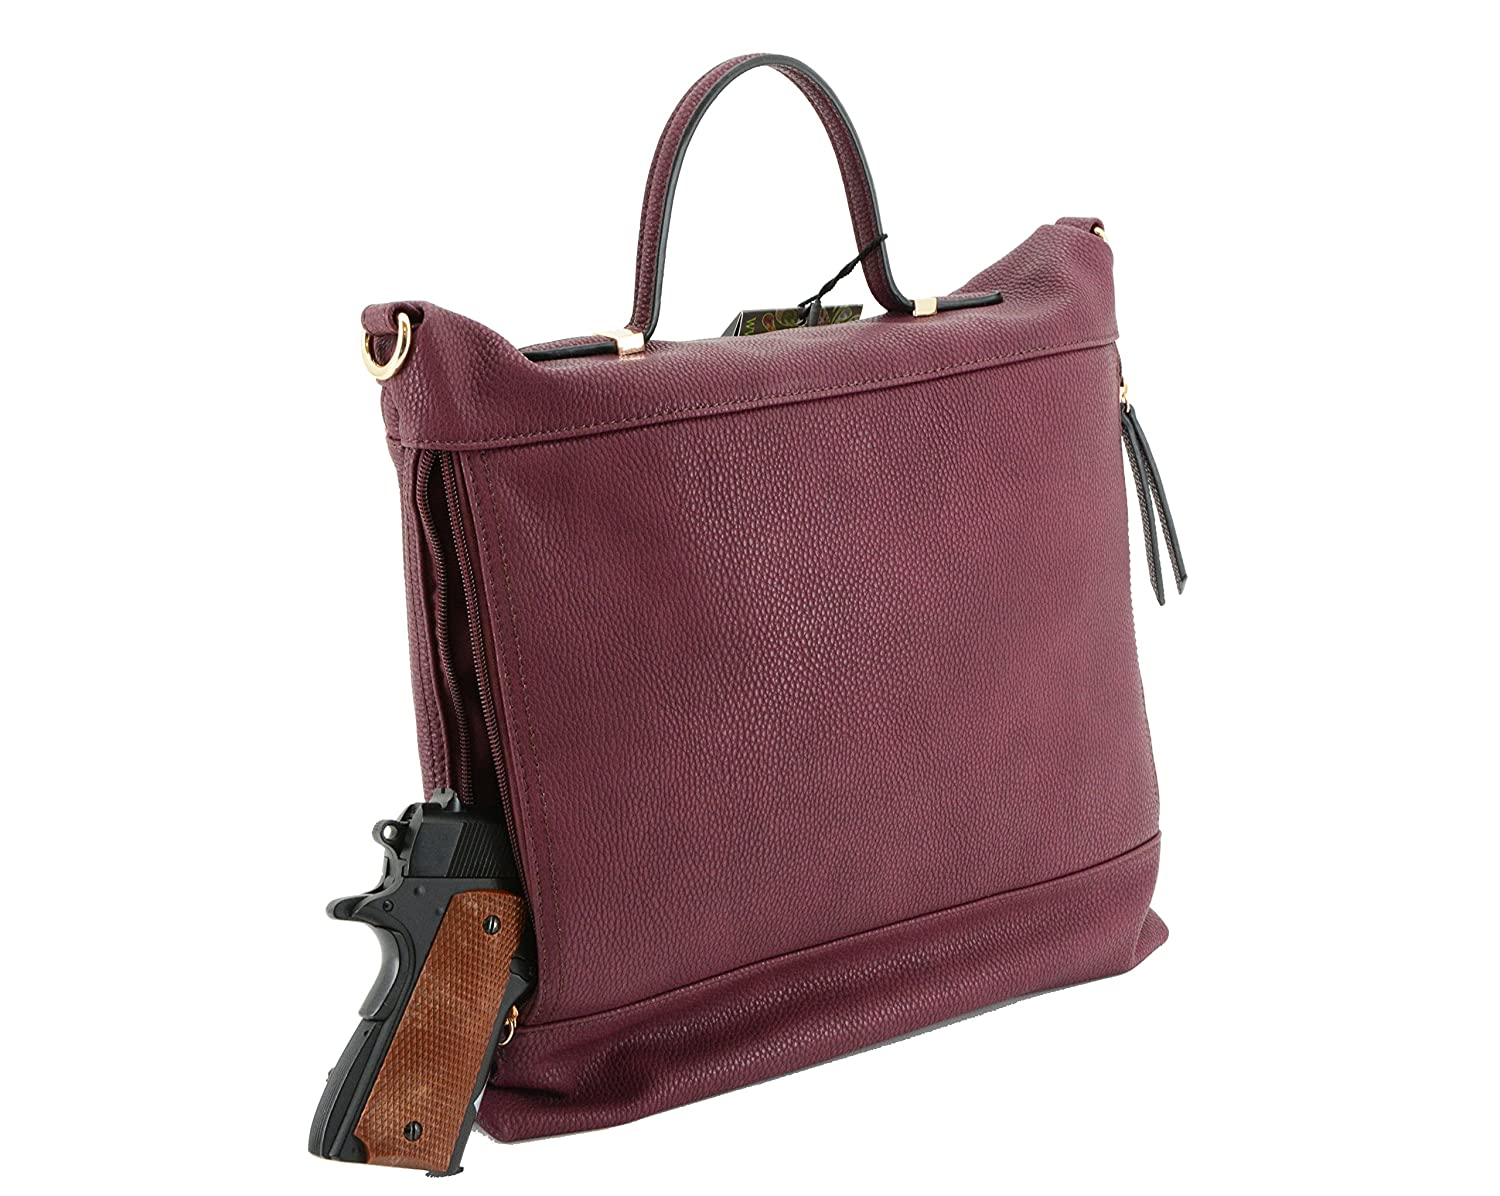 Amazon.com: Afrodita Concealed Carry Purse: Sports & Outdoors